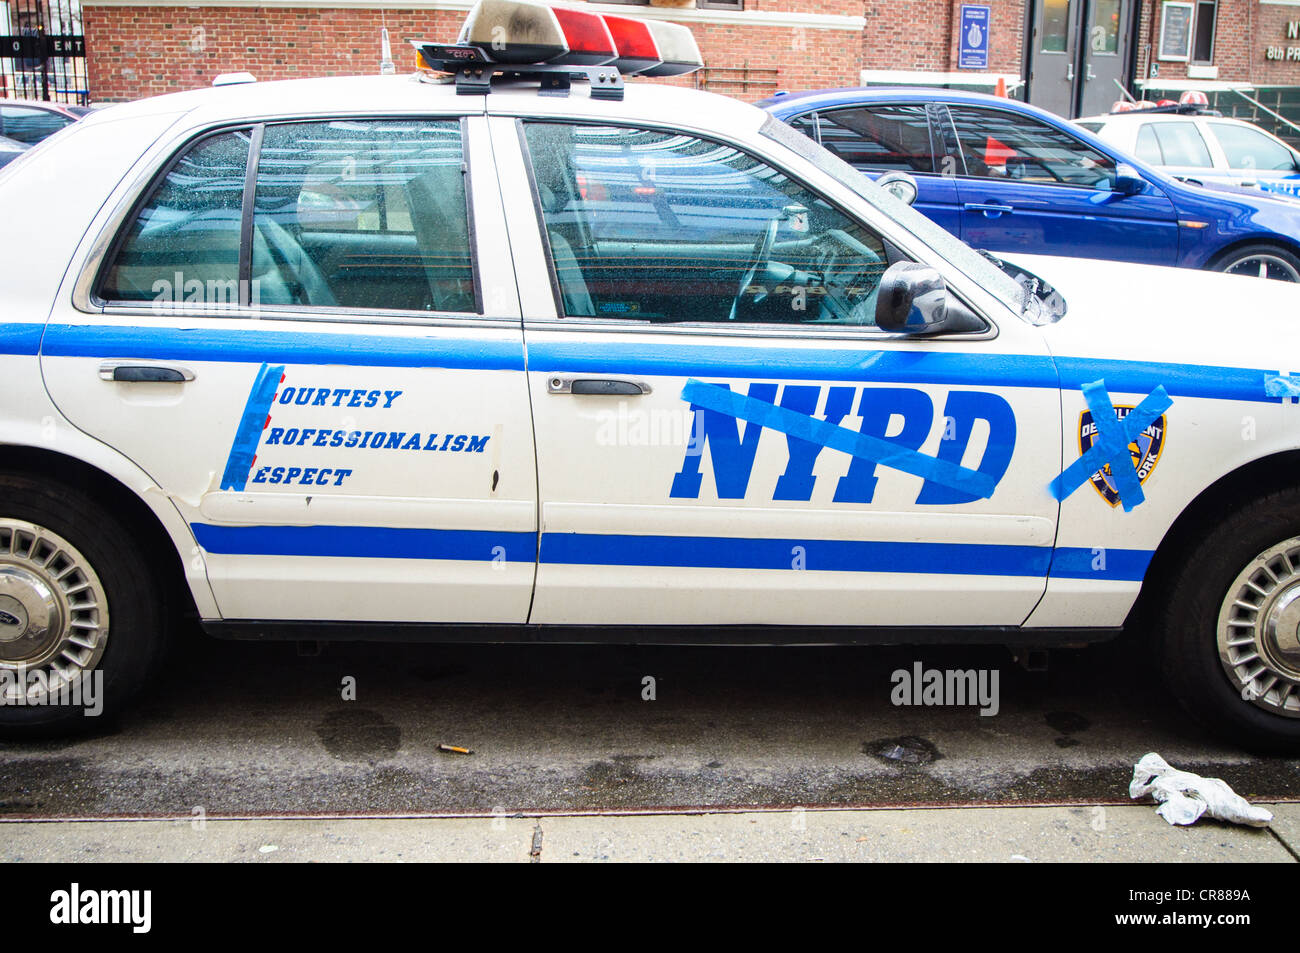 New York City Police Department cars with NYPD words and graphics taped over, at a TV taping in New York City. - Stock Image